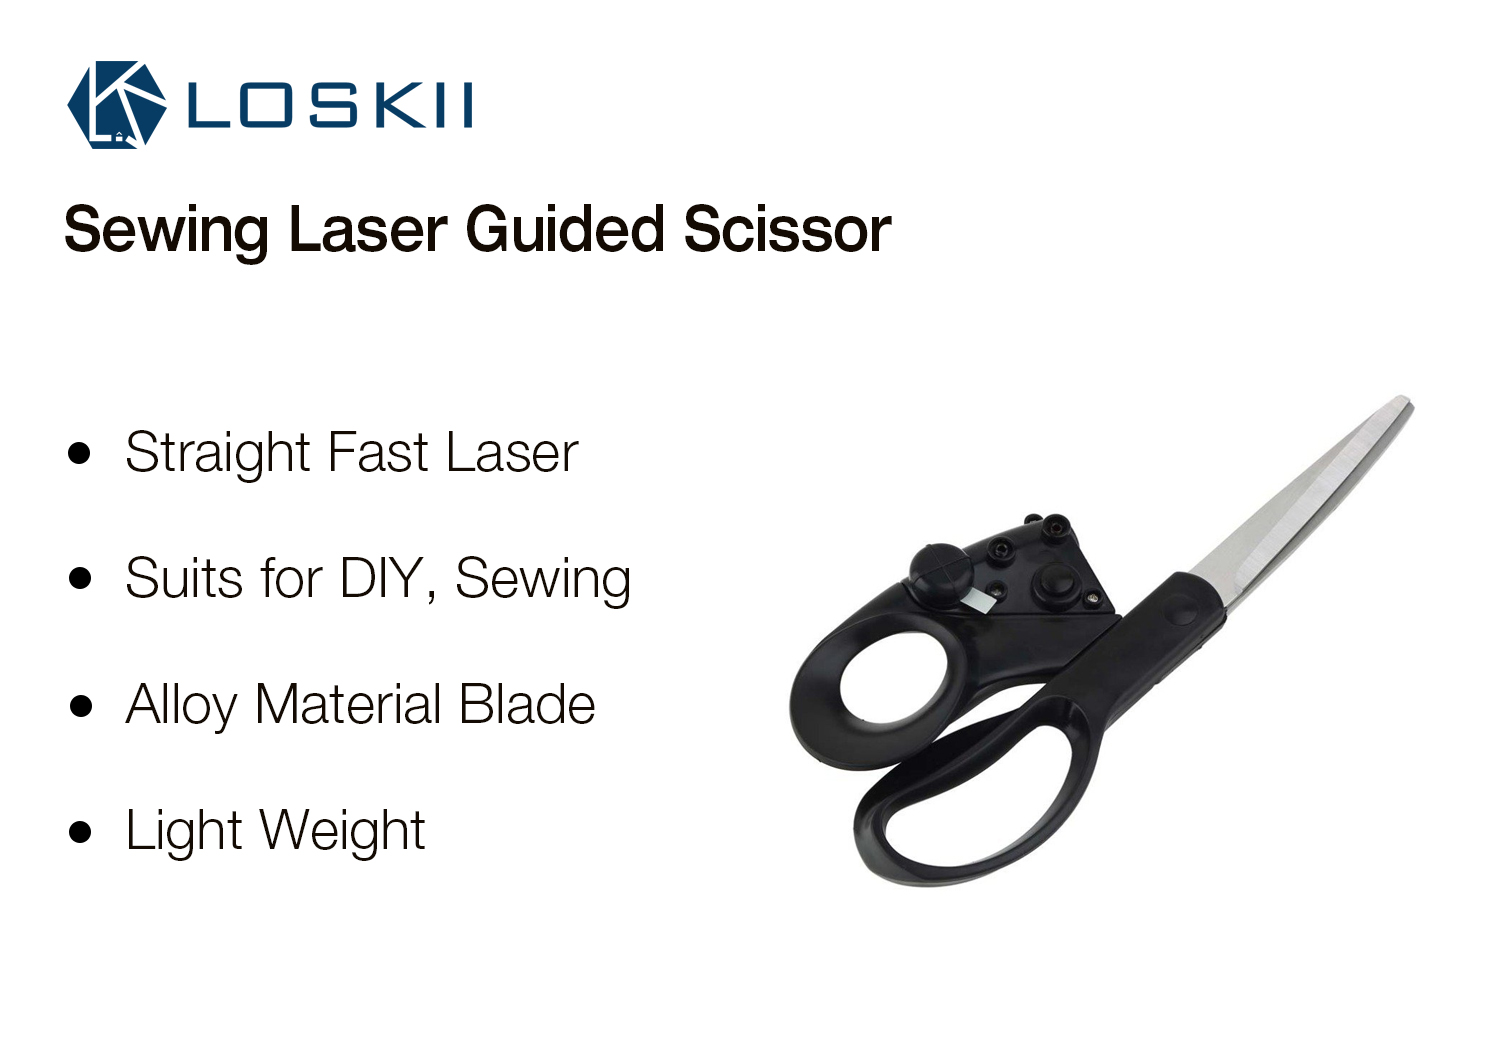 Loskii HT-220 Sewing Laser Guided Scissors Fast Laser Guided for Home Crafts Wrapping Cuts Straight